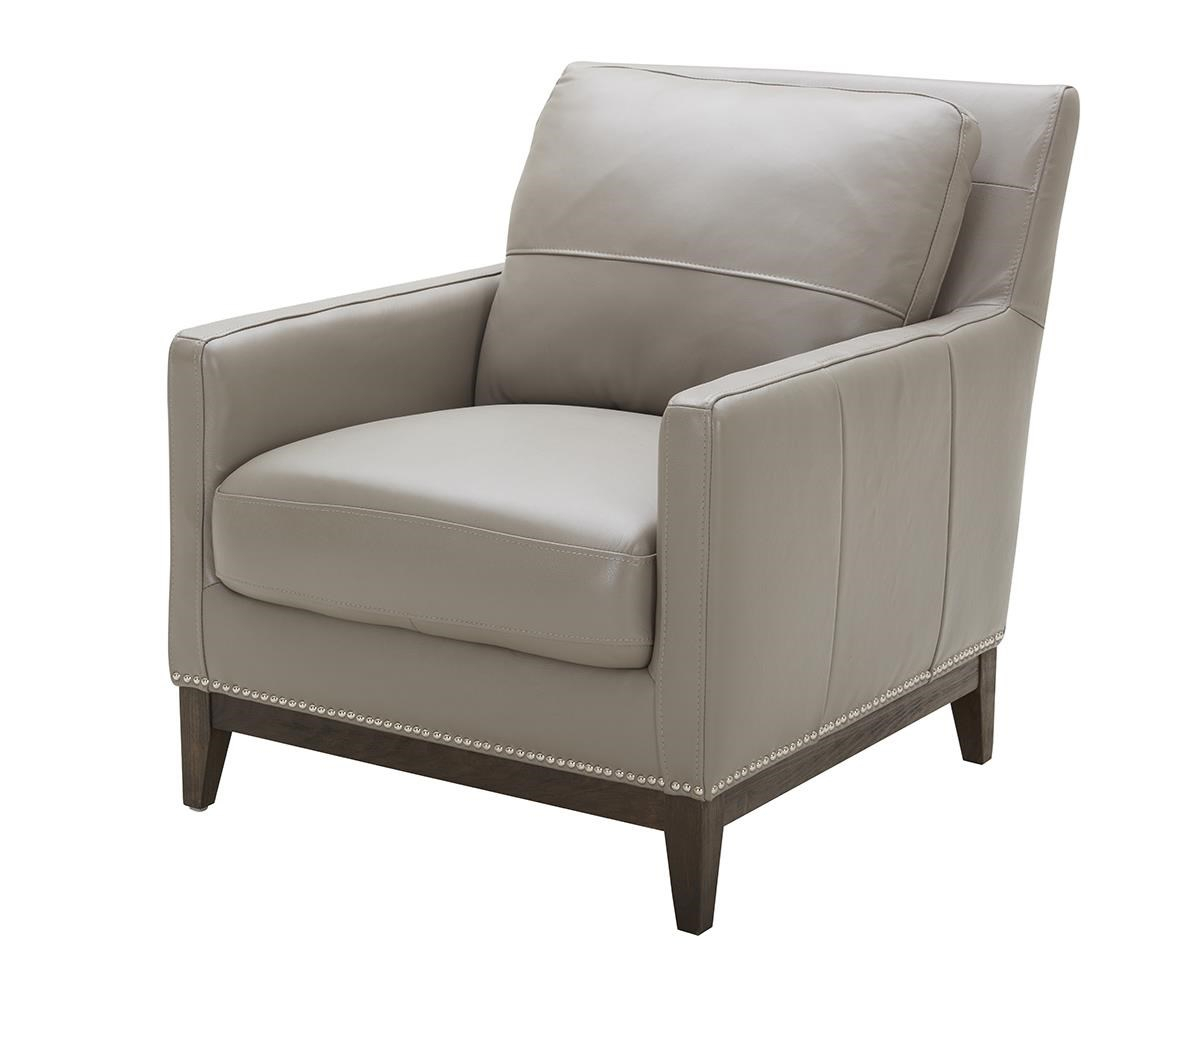 Urban Evolution Grandin Tufted Leather Chair | Belfort Furniture For Grandin Leather Sofa Chairs (Photo 3 of 25)